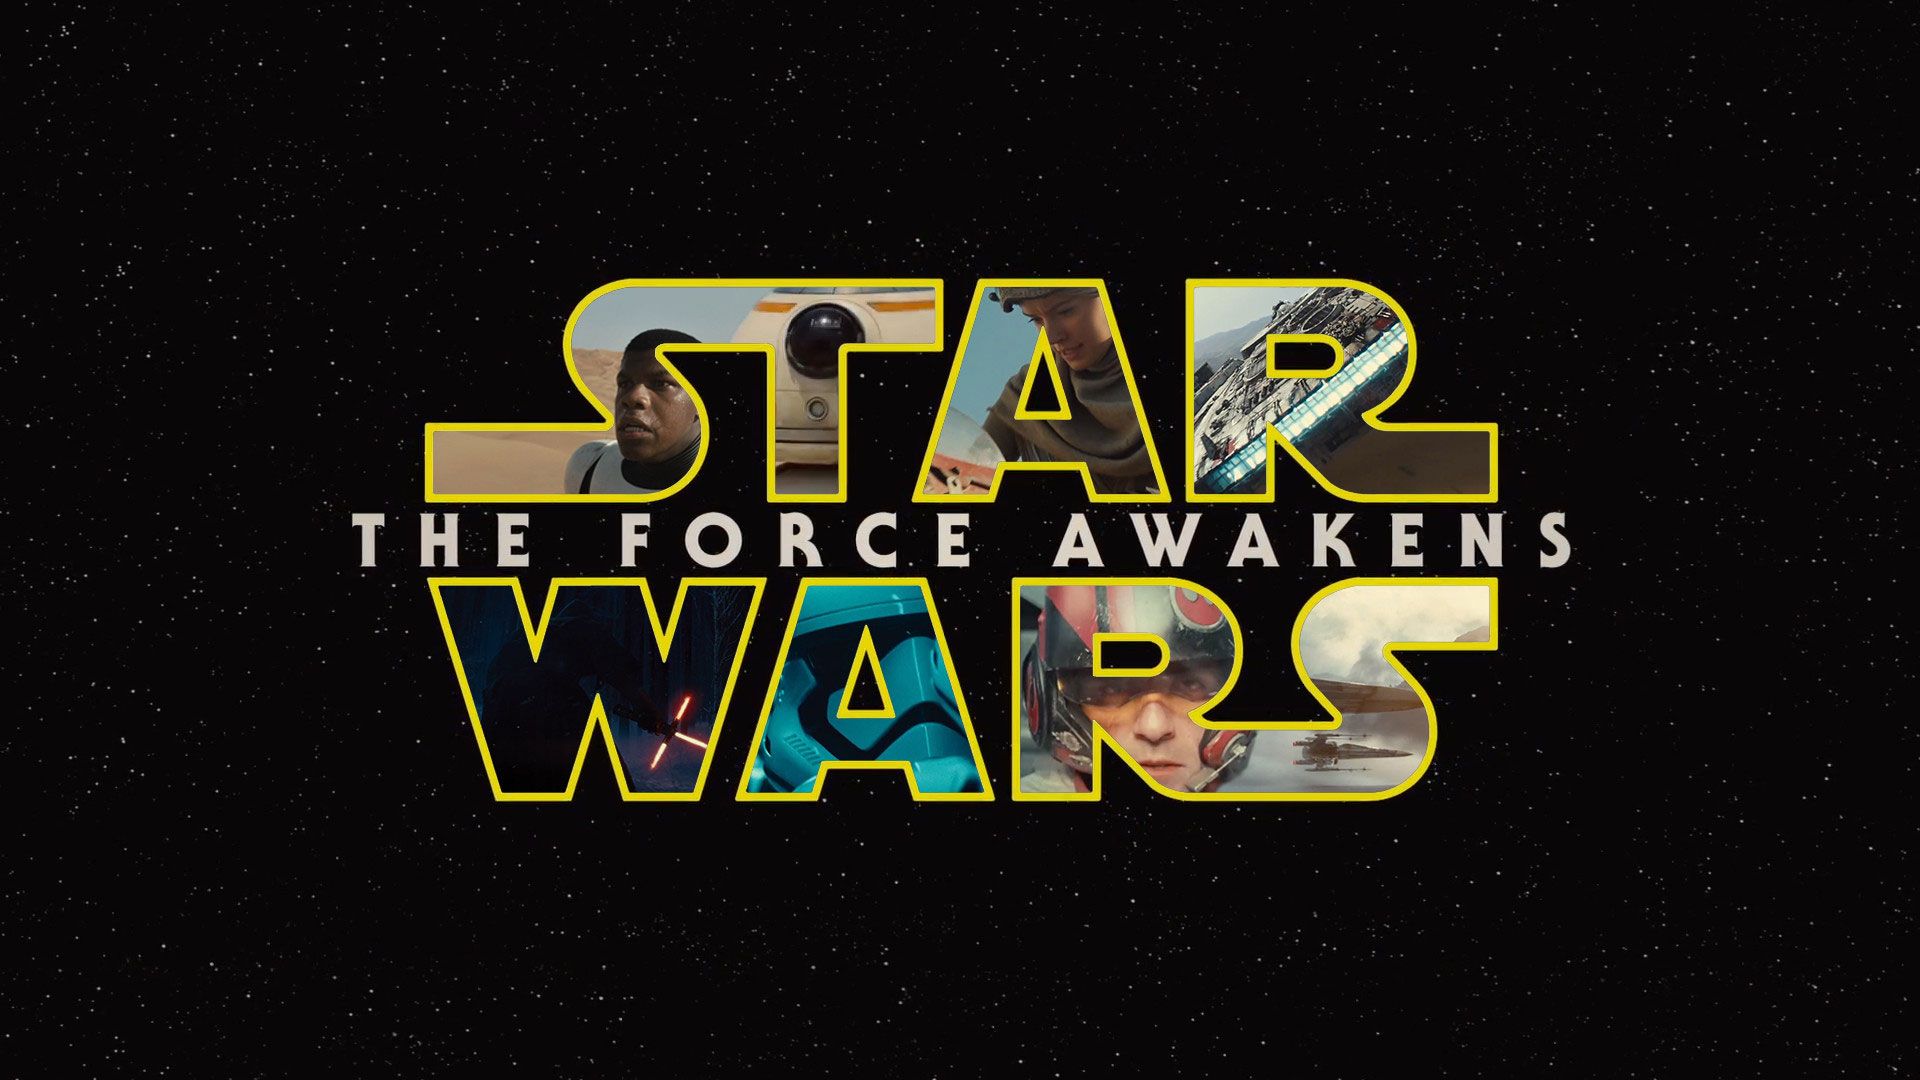 star wars: episode VII - the force awakens review